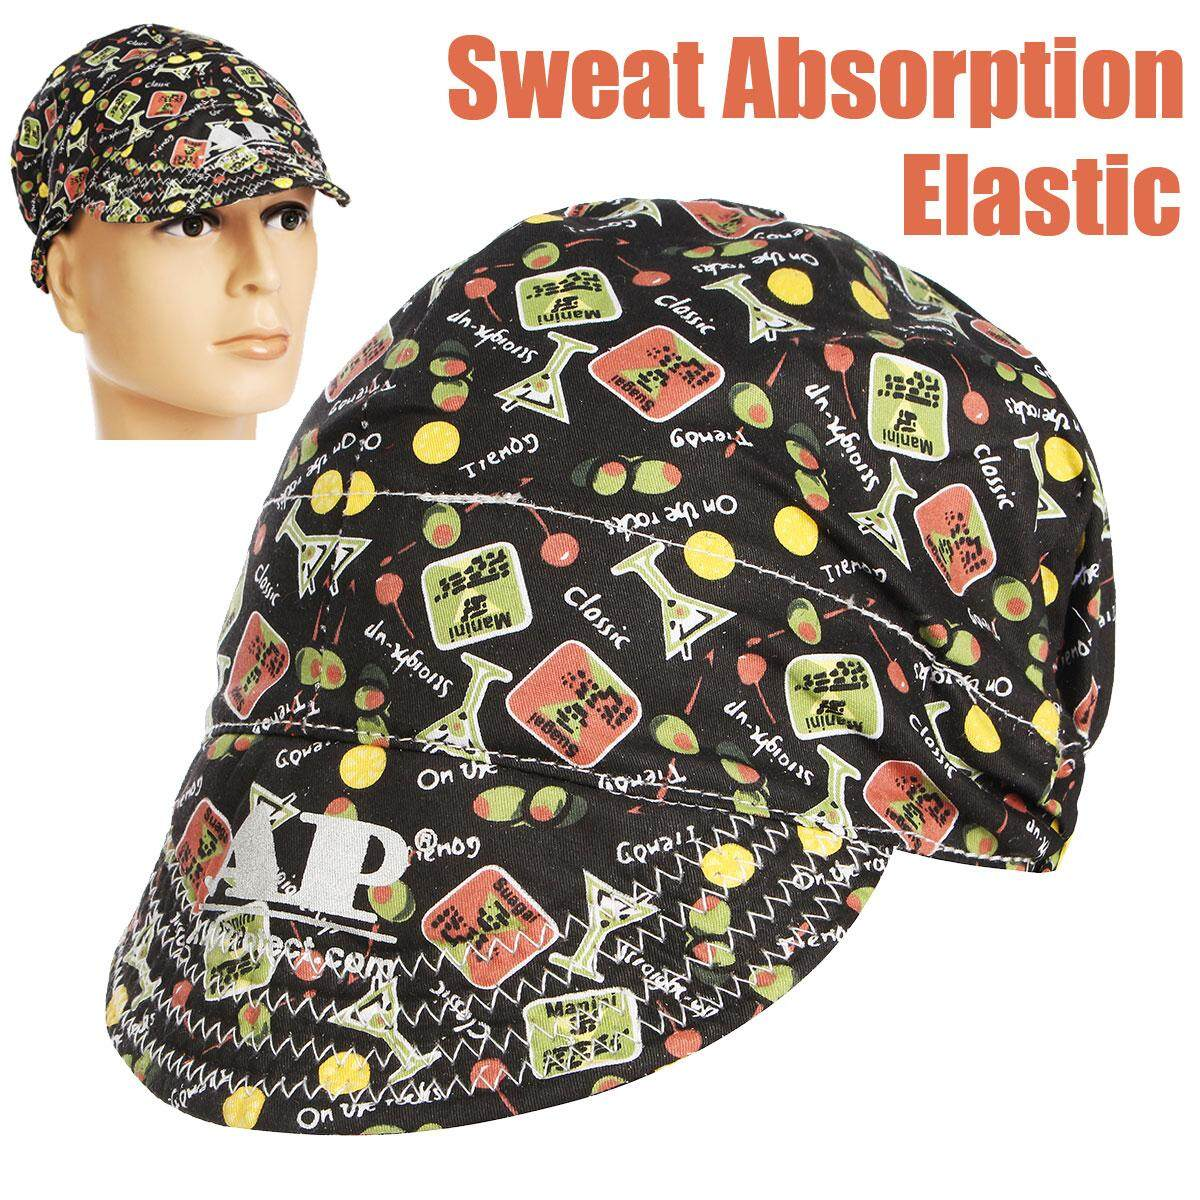 3PCS Universal Sweat Absorption Elastic Welding Welder Hat Cap Soft Cotton Happy Hour